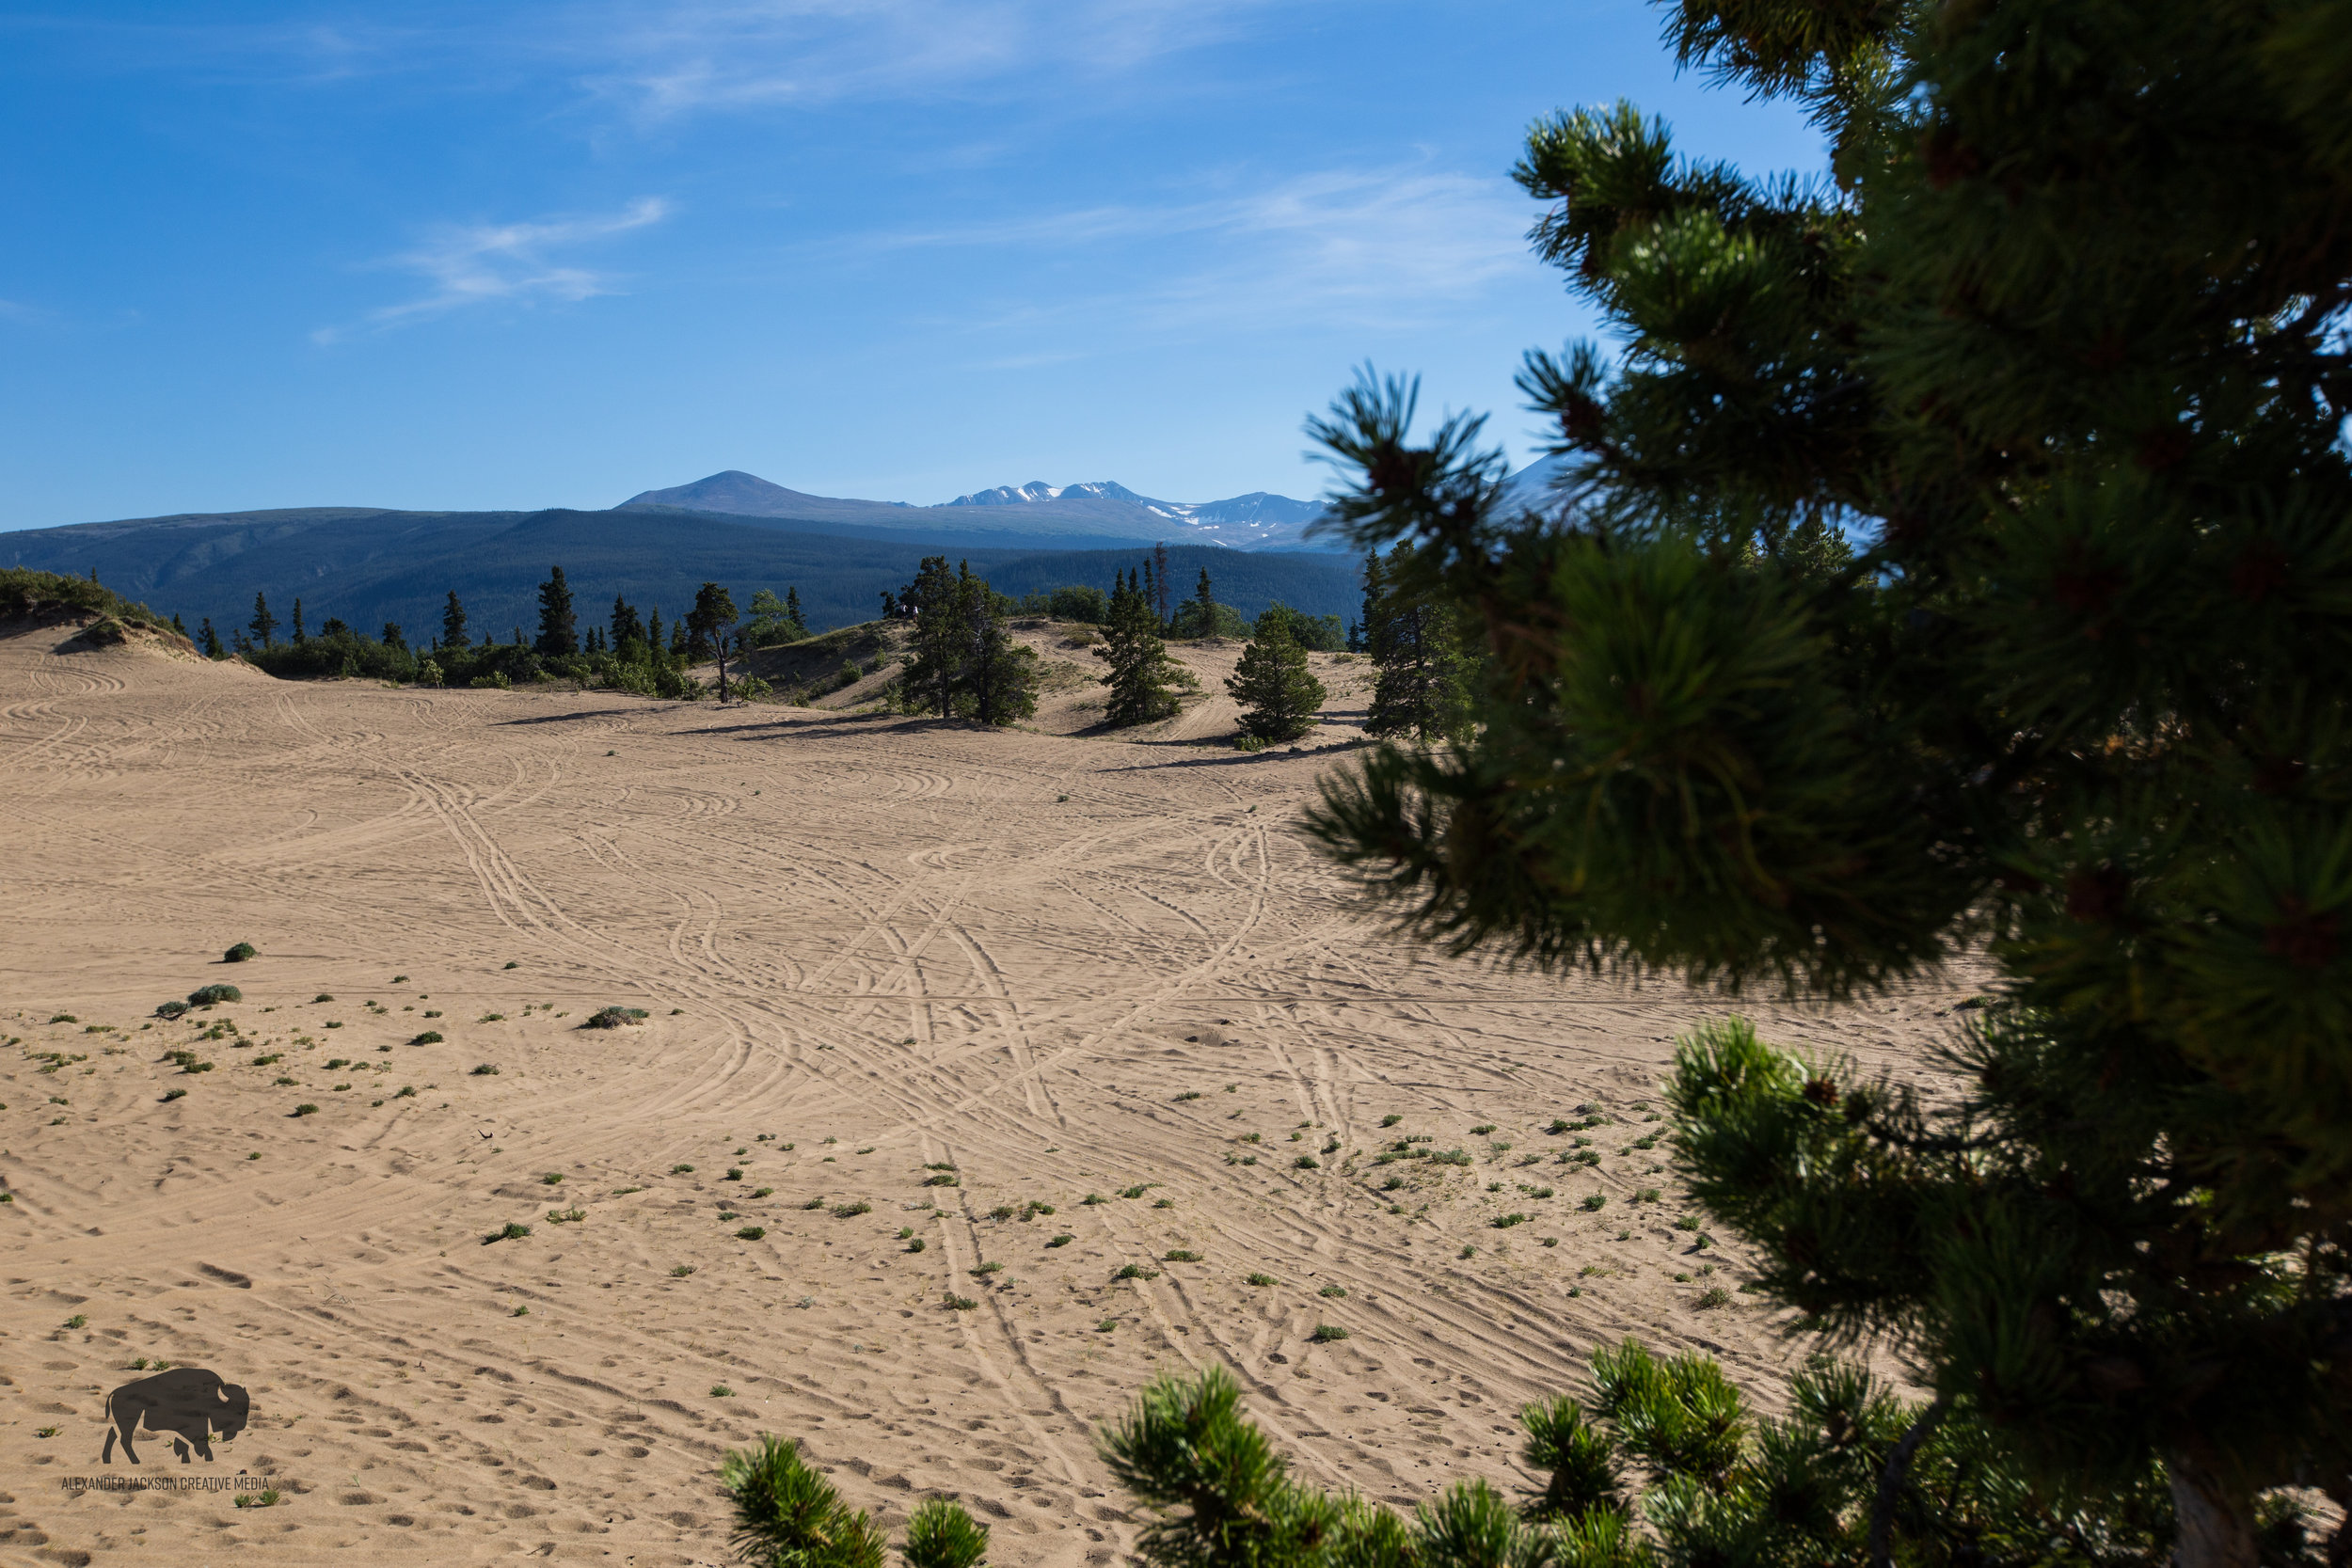 The Carcross Desert. All this sand was blown here by the high winds coming off the lake.